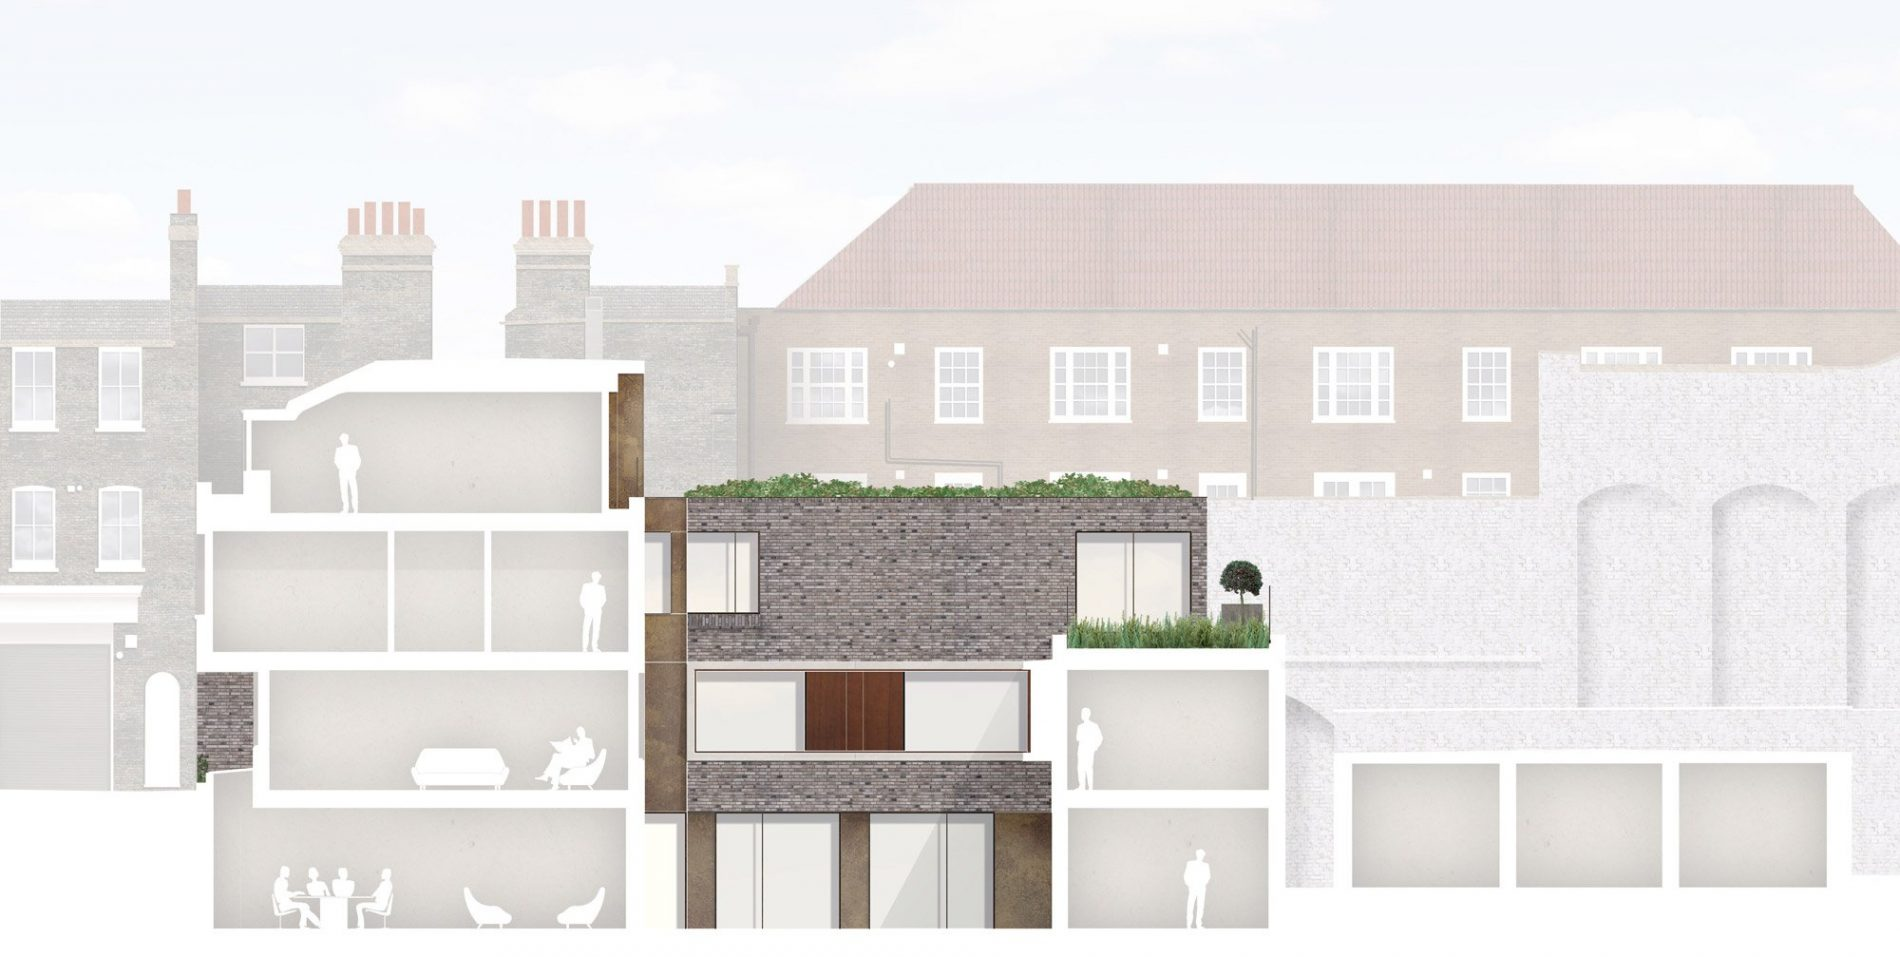 34 Weymouth Mews by Morrow + Lorraine